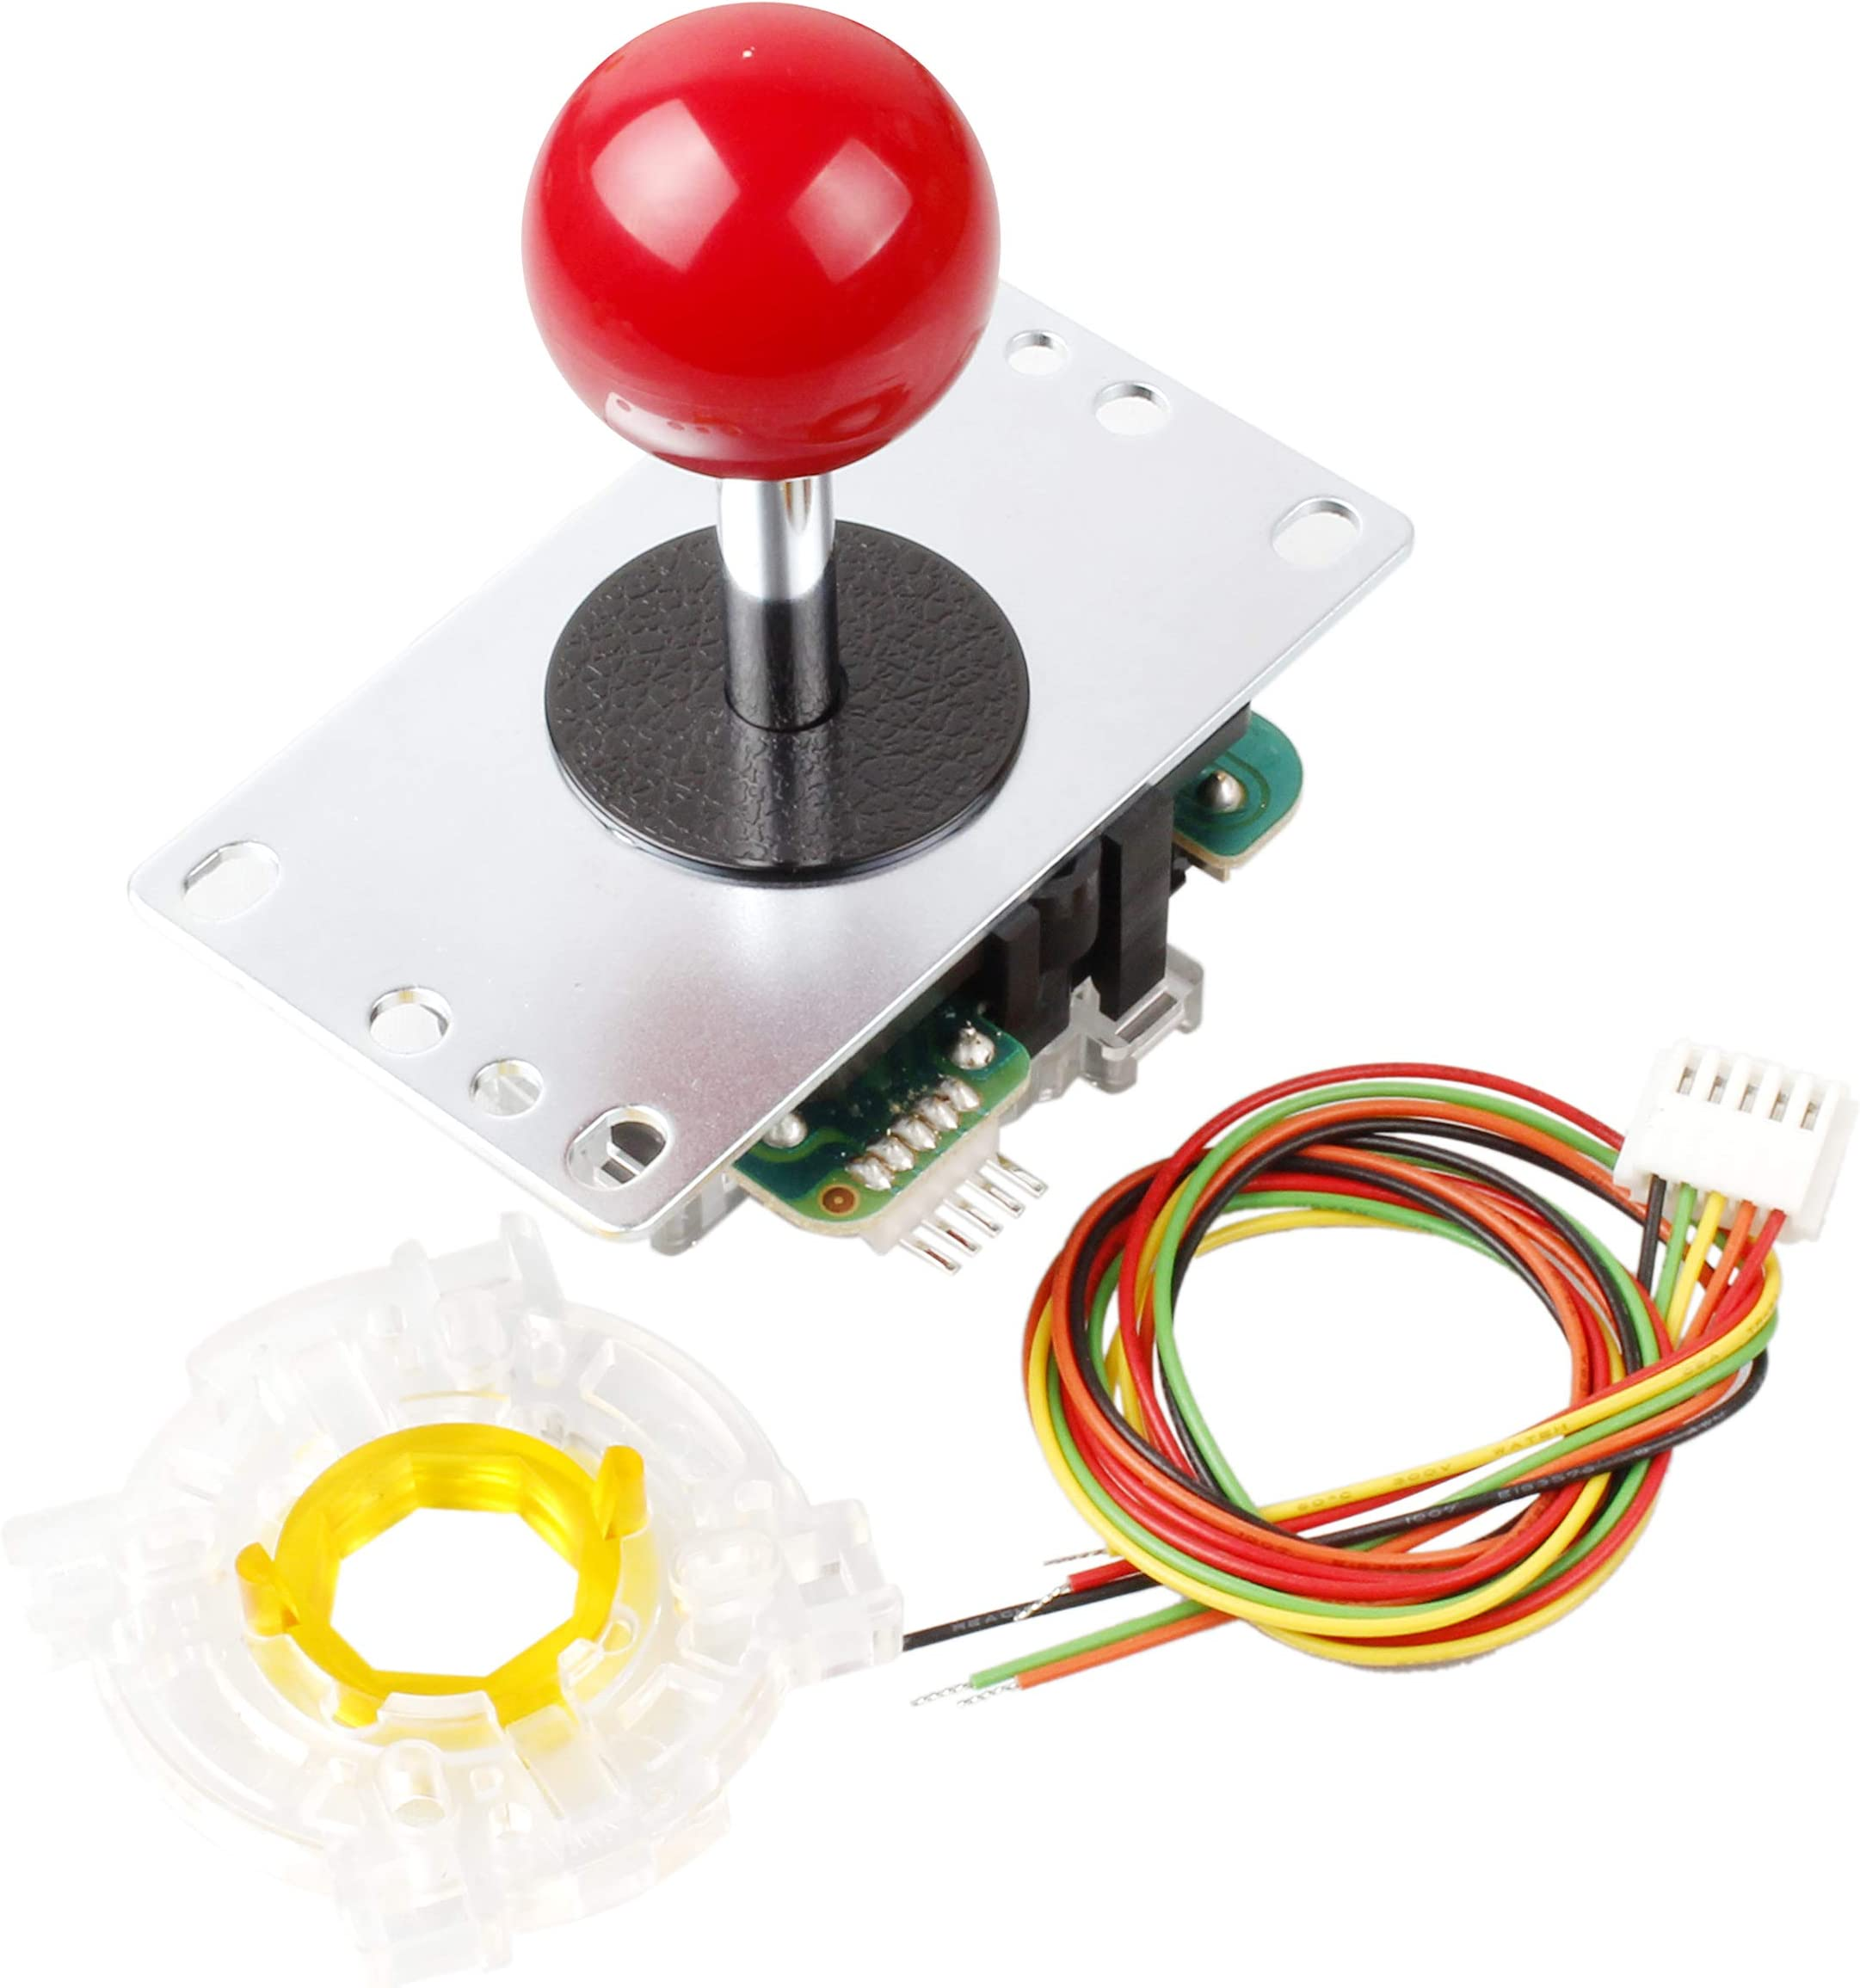 sanwa joystick wiring diagram wiring diagram saitek throttle amazon com samwa jlf tp 8yt stick sanwa gt y octagonal gate forsanwa joystick wiring diagram